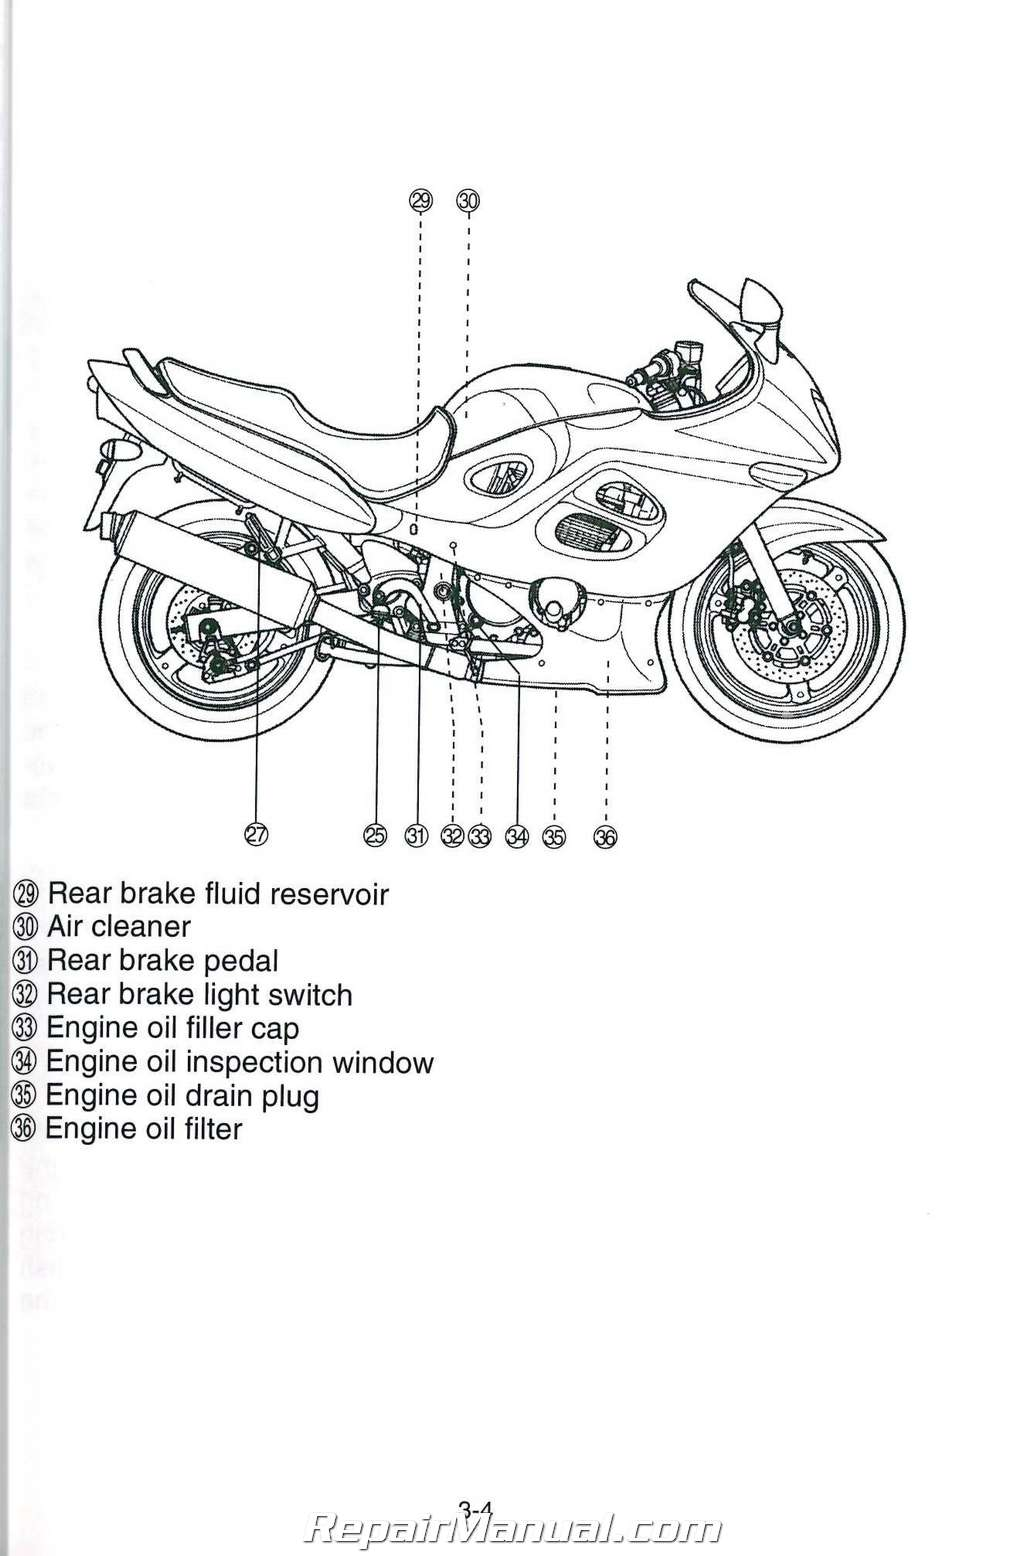 2006 Suzuki Katana GSX600F Motorcycle Owners Manual